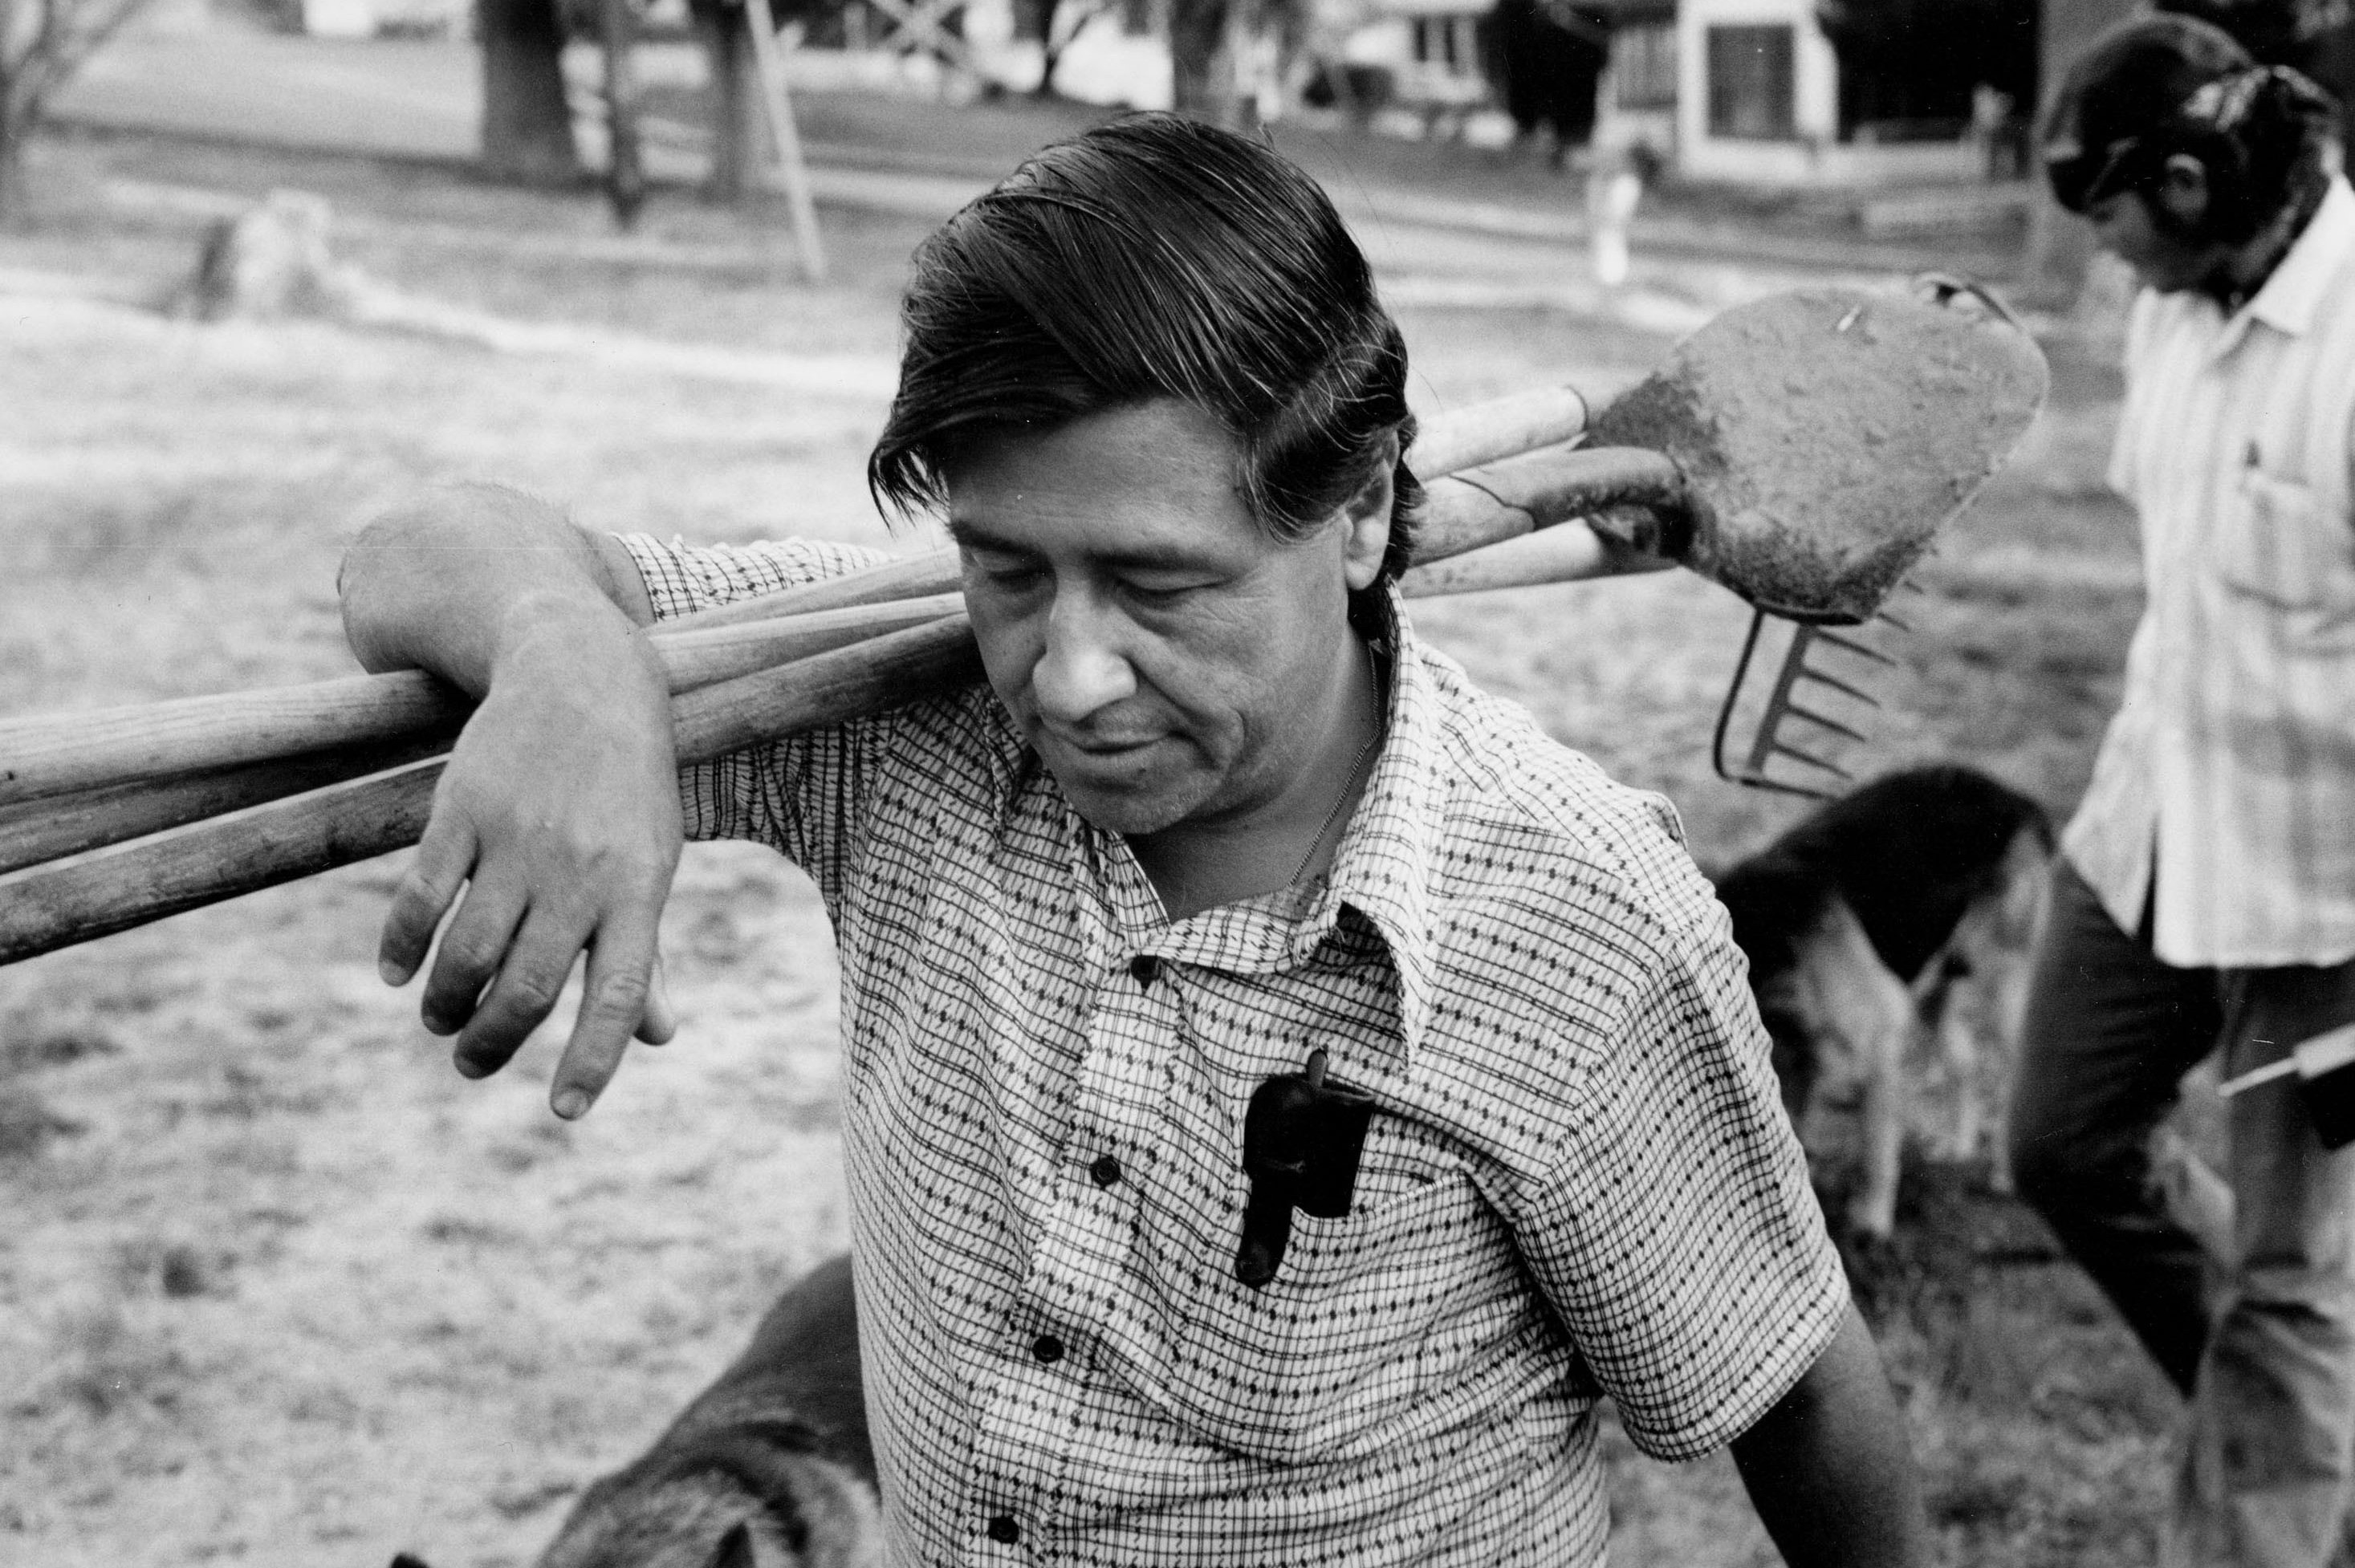 Cesar Chavez of the United Farm Workers Union, April 1974, California.